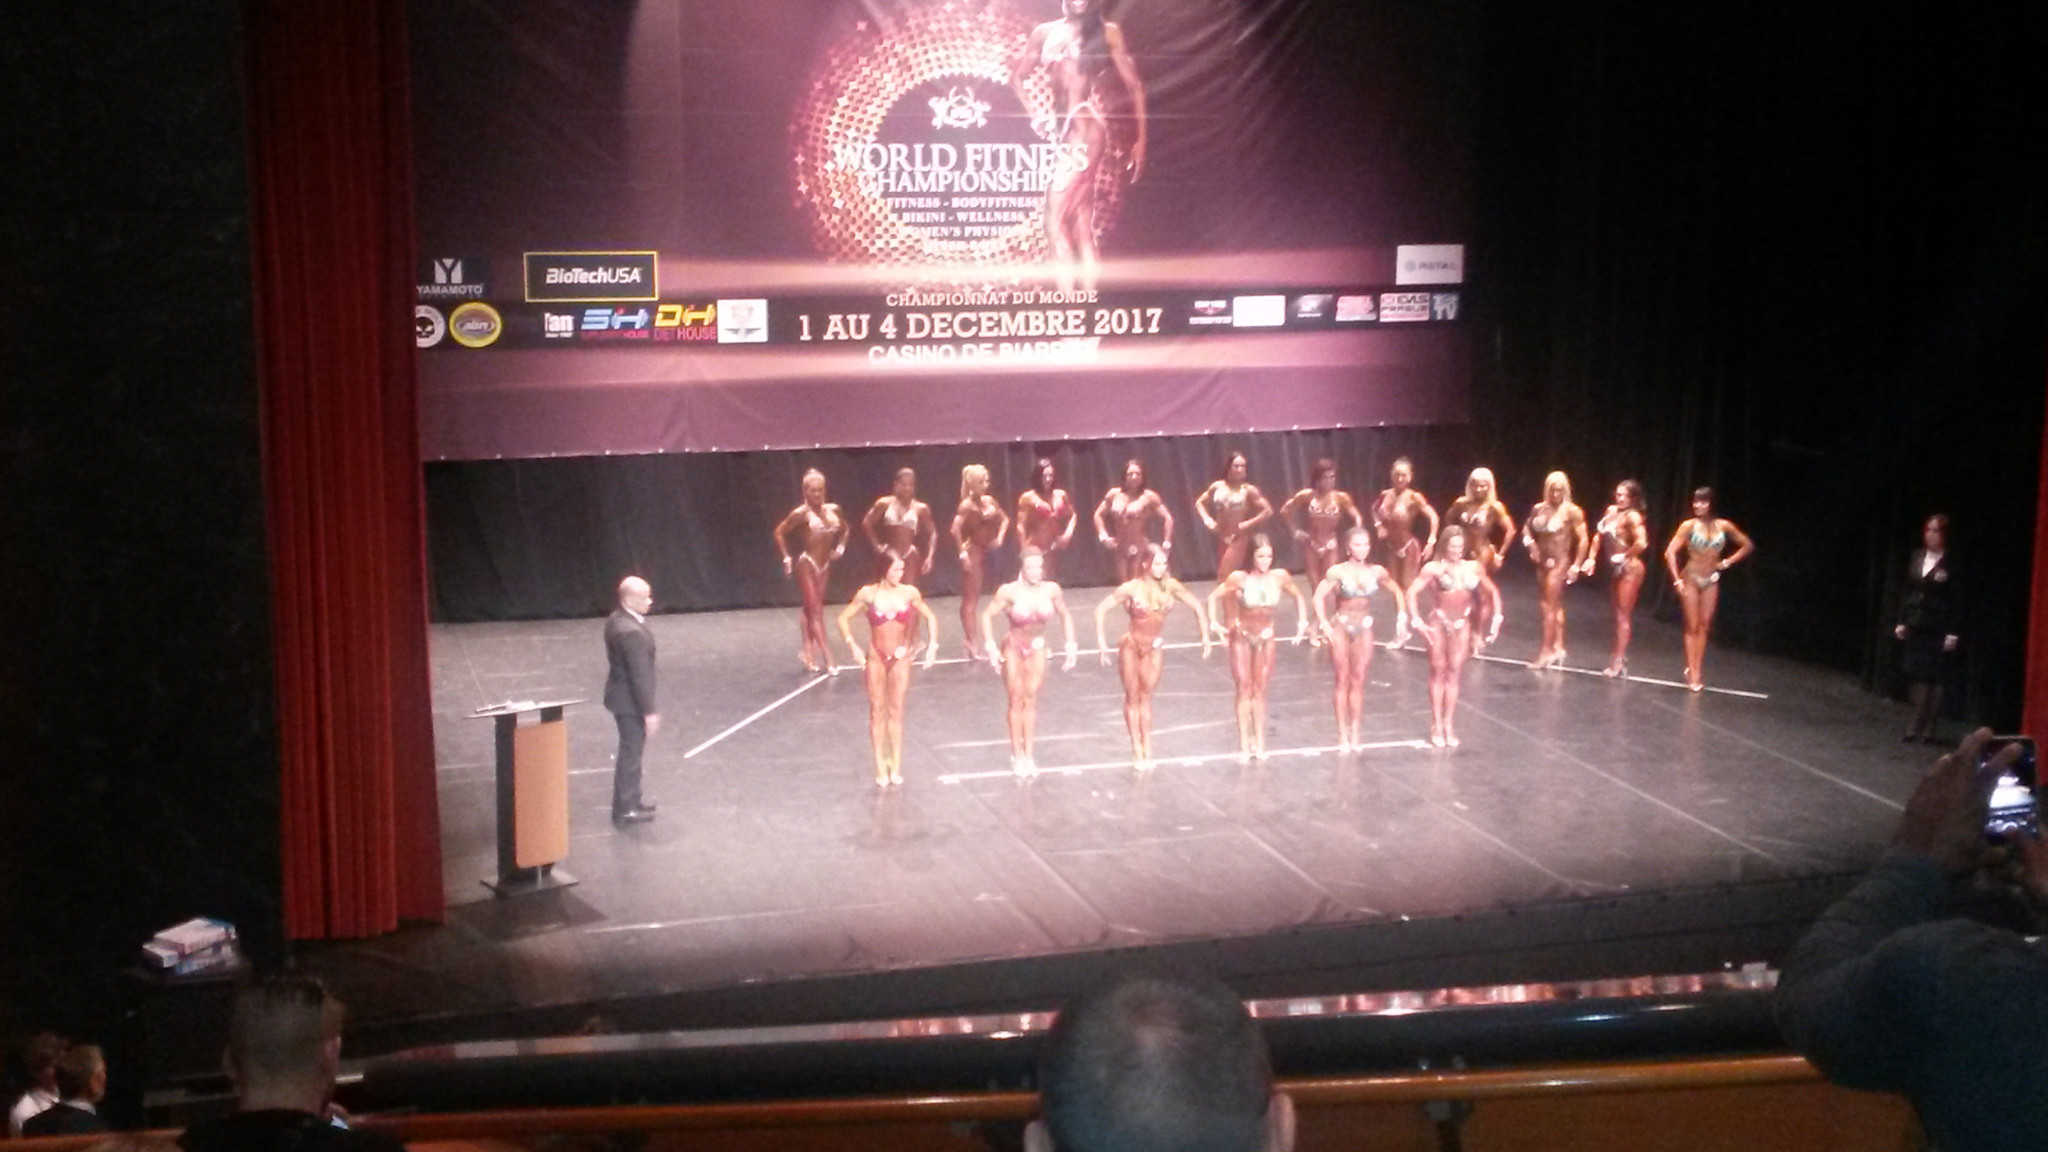 insidethegames reporting LIVE from the 2017 IFBB World Fitness Championships in Biarritz